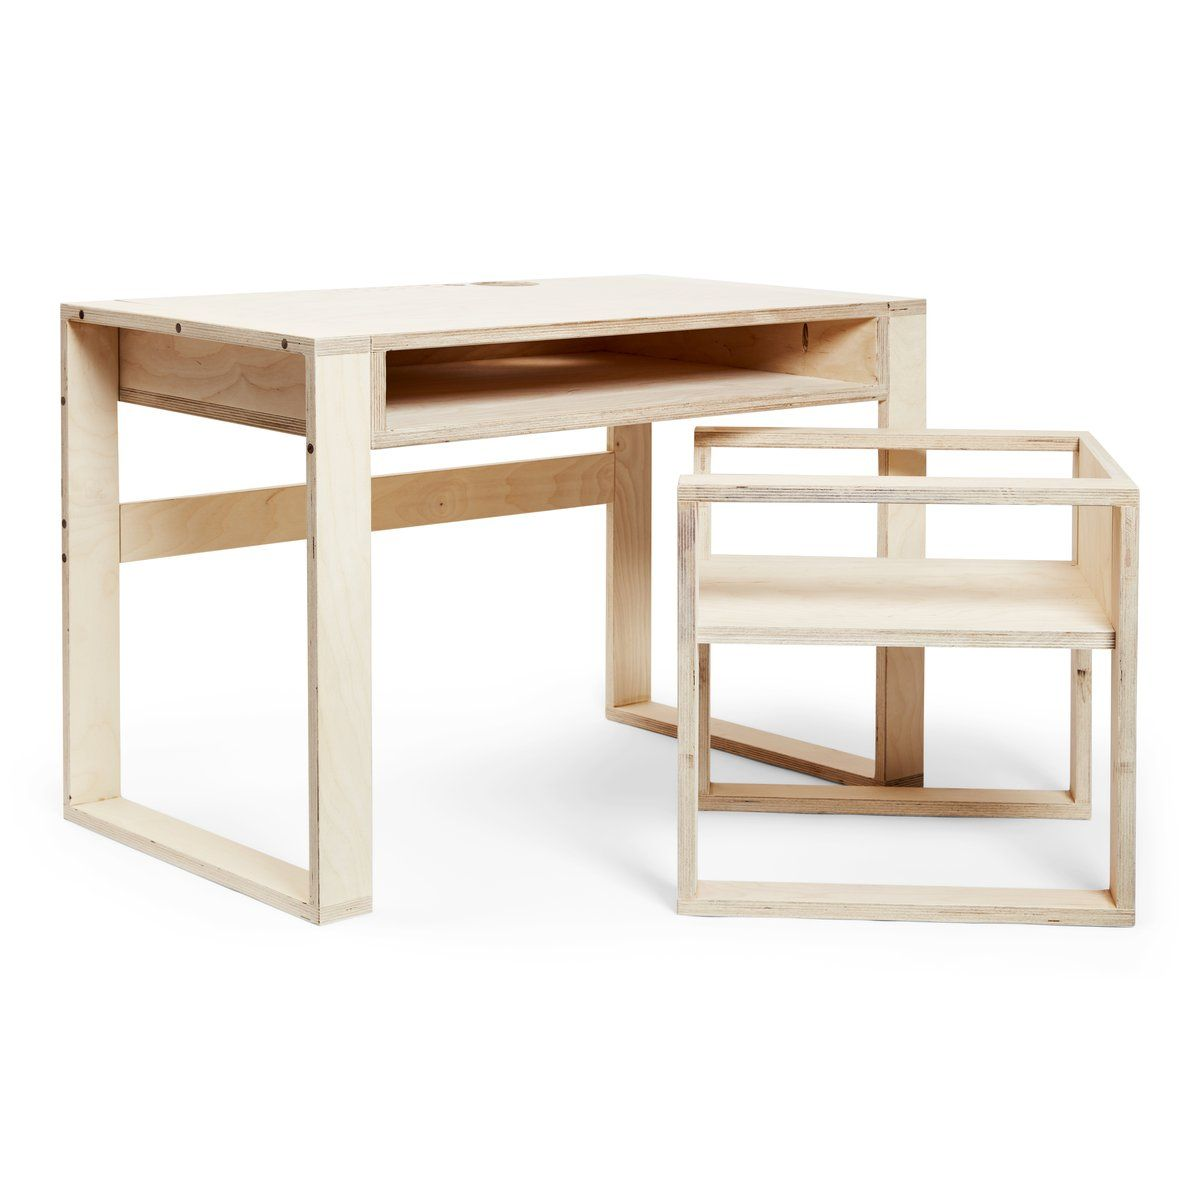 The Kids Desk And Chair Set Franklin Emily Children S Furniture Franklin Emily In 2020 Desk And Chair Set Desk Set Chair Set